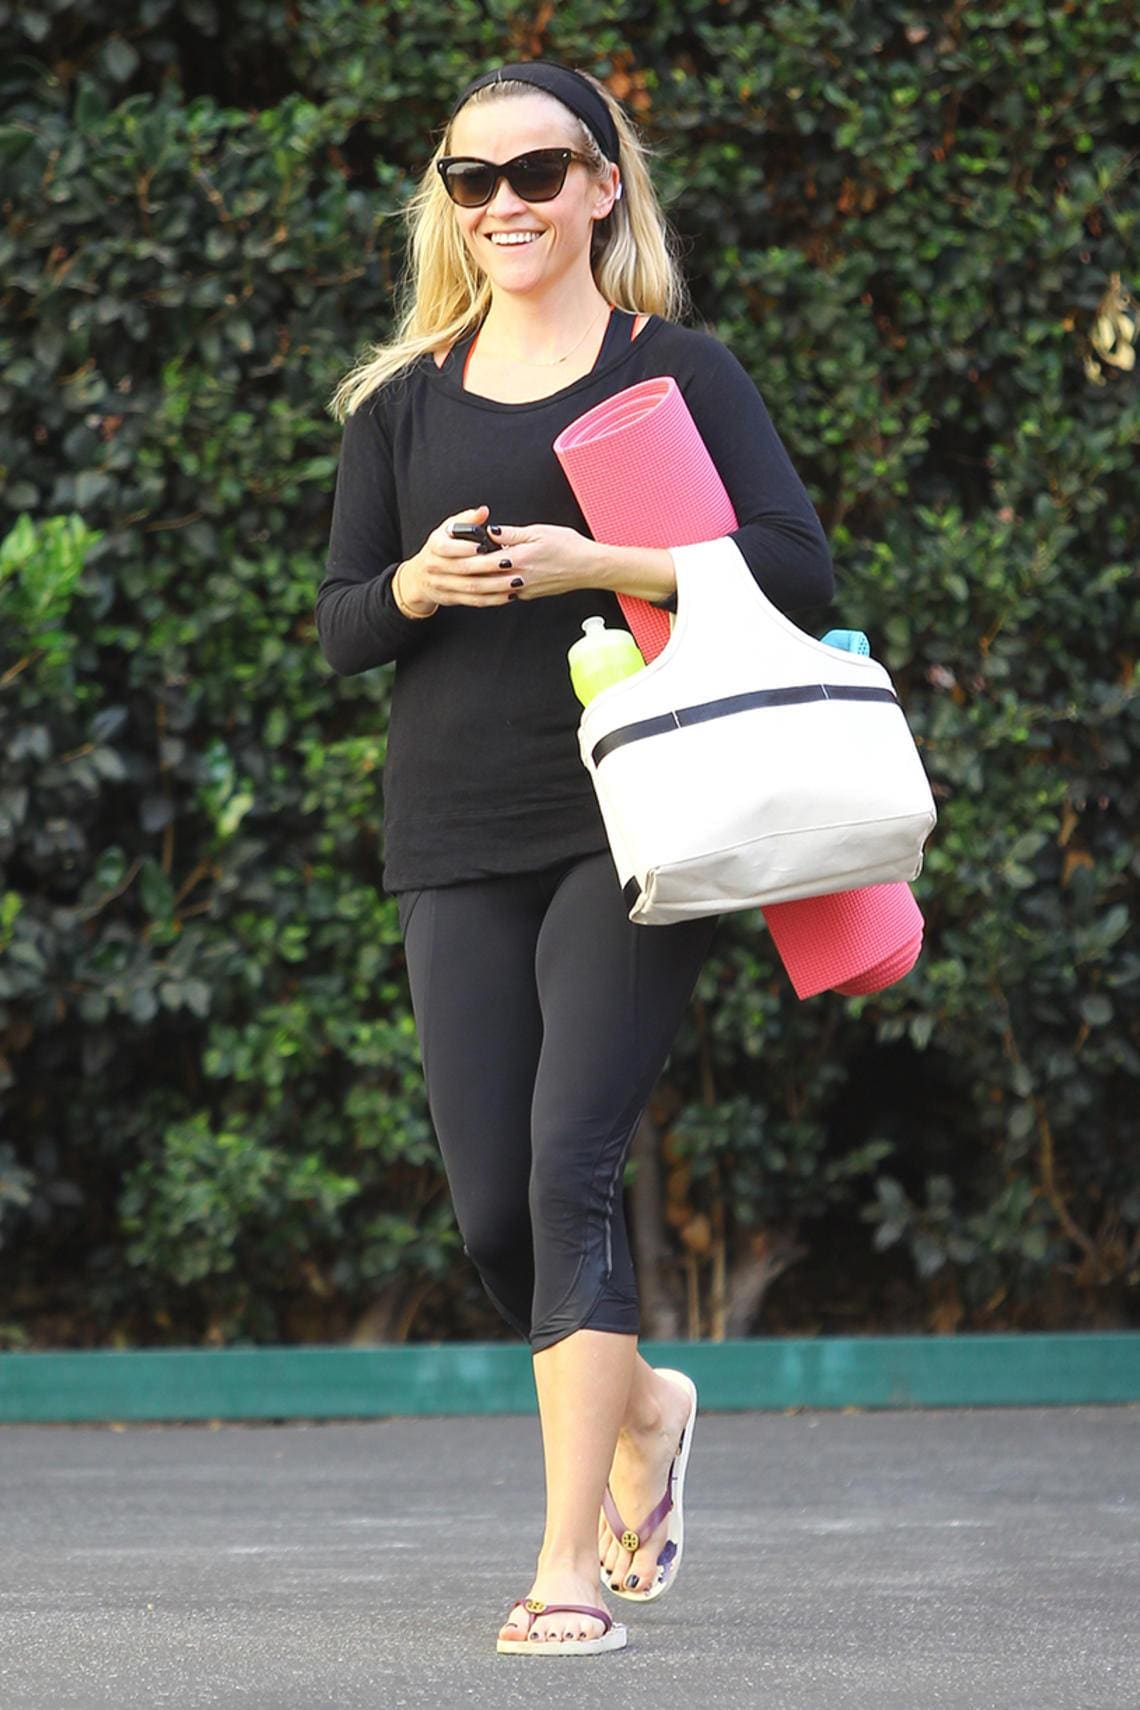 Reese Witherspoon mit Yogamatte